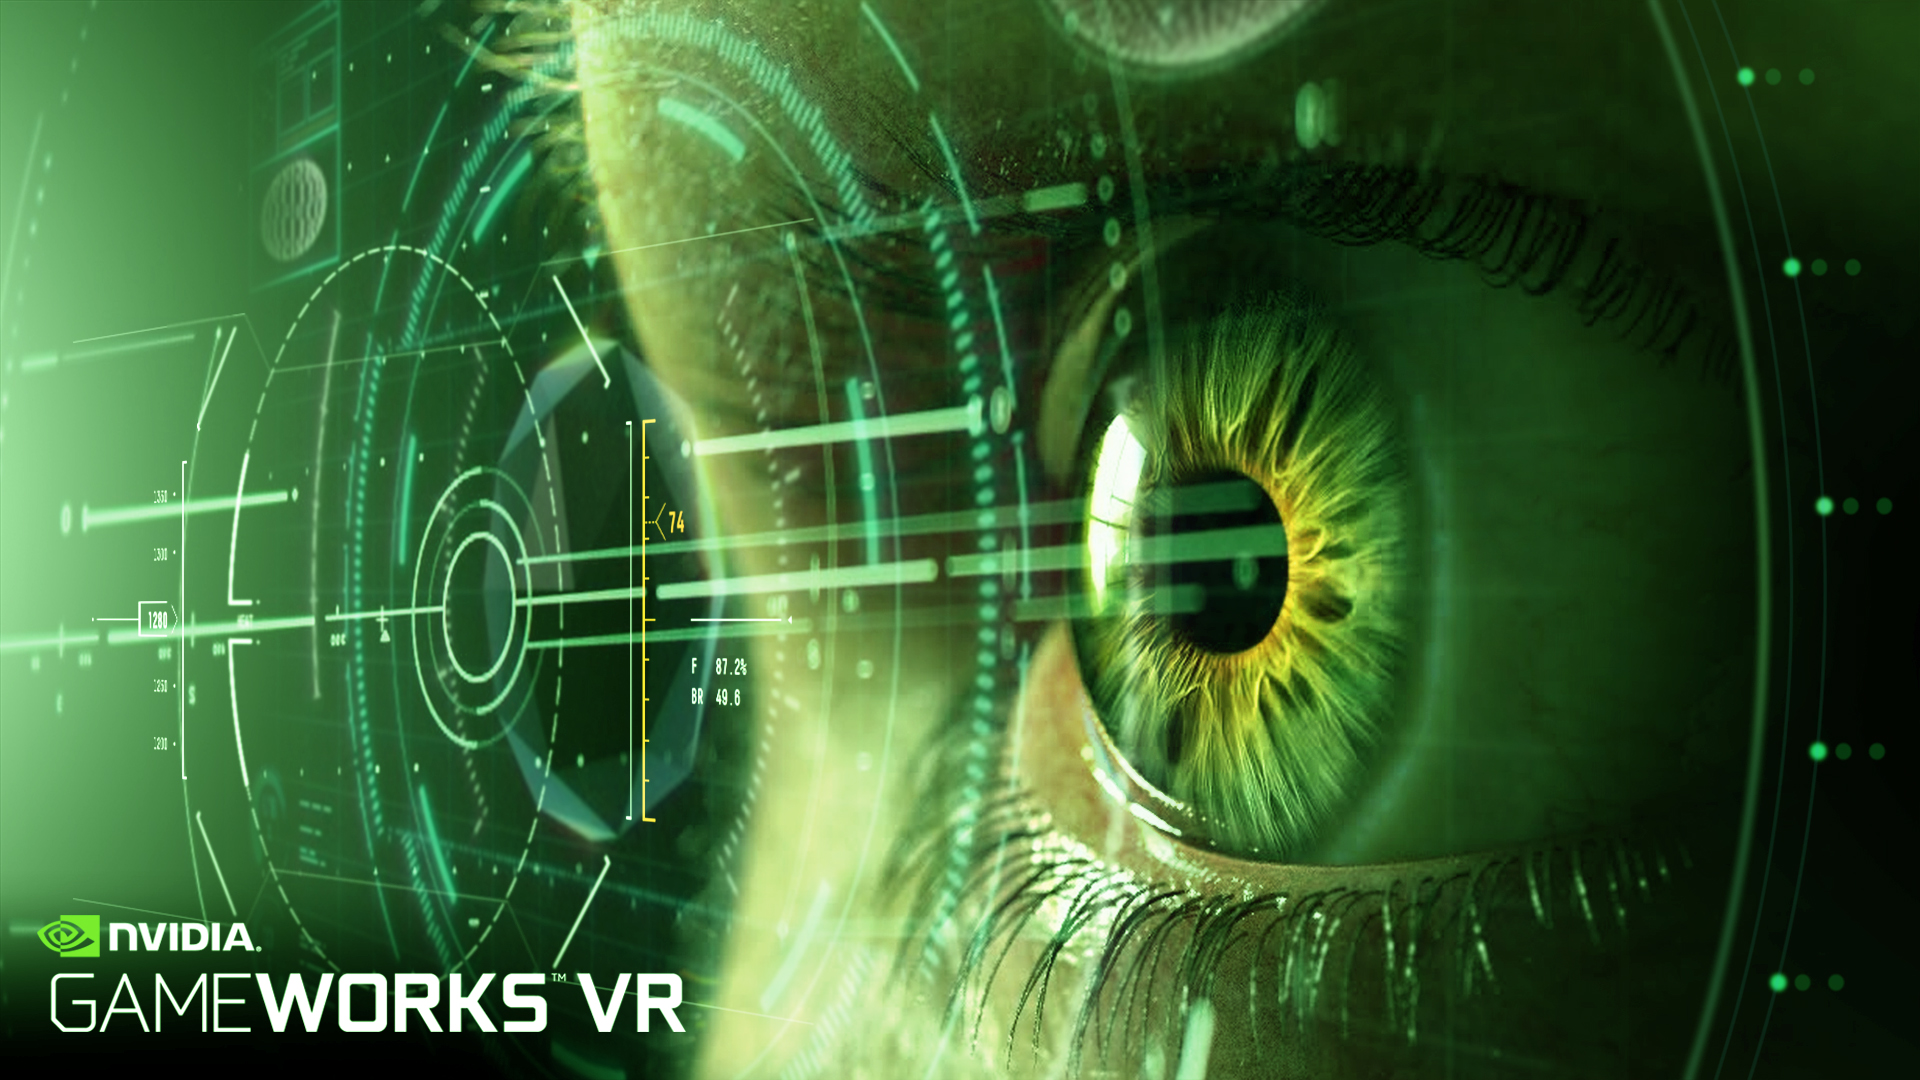 NVIDIA 'Gameworks VR' Beta and New 'VR SLI' Enabled Drivers Now